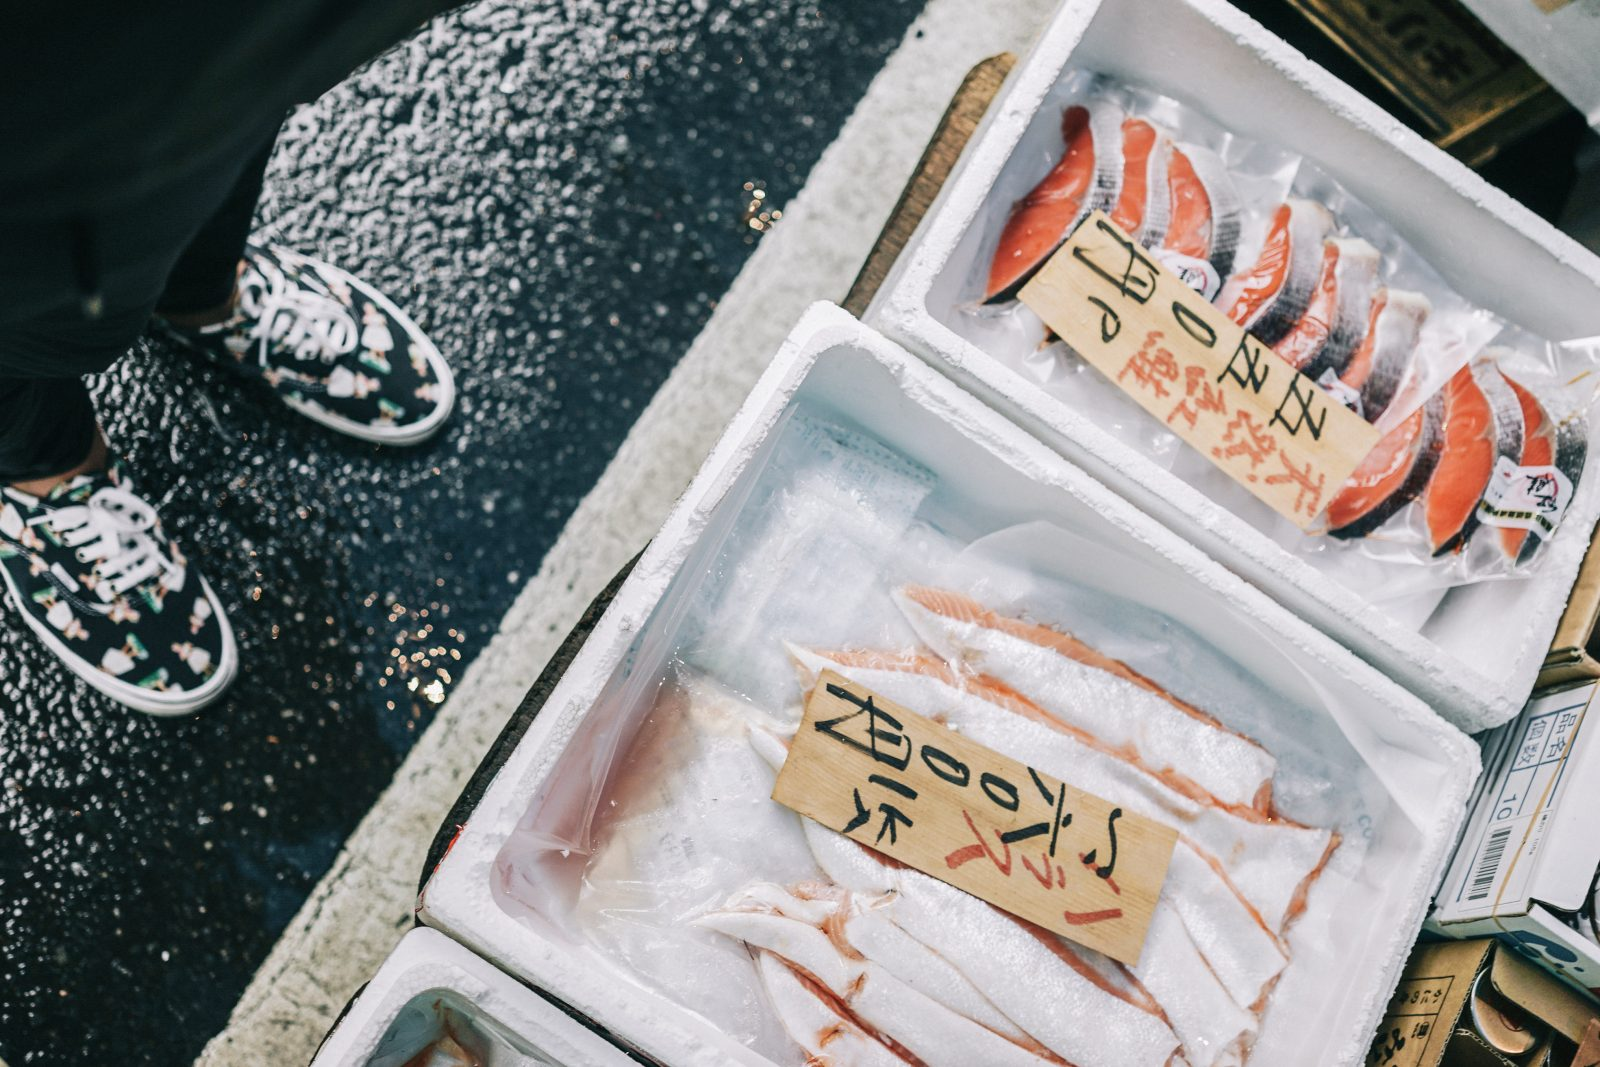 Tokyo_Travel_Guide-Fish_Market-Harajuku-Levis_Denim_Skirt-Off_The_Shoulders_Top-YSL_Sneakers-Outfit-Collage_Vintage-Street_Style-60